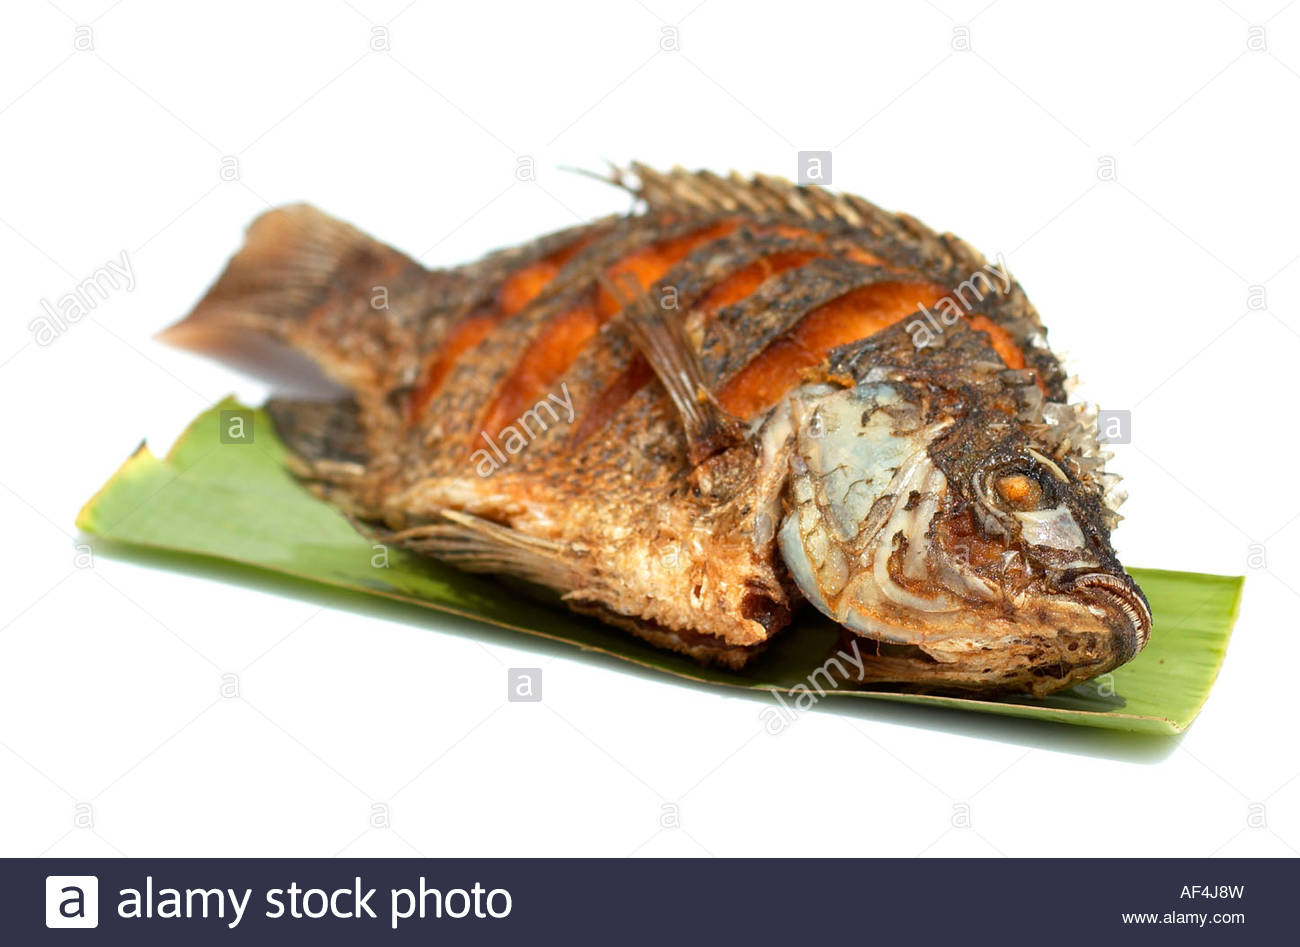 Deep fried tilapia fish stock photo royalty free image for Deep fried whole fish